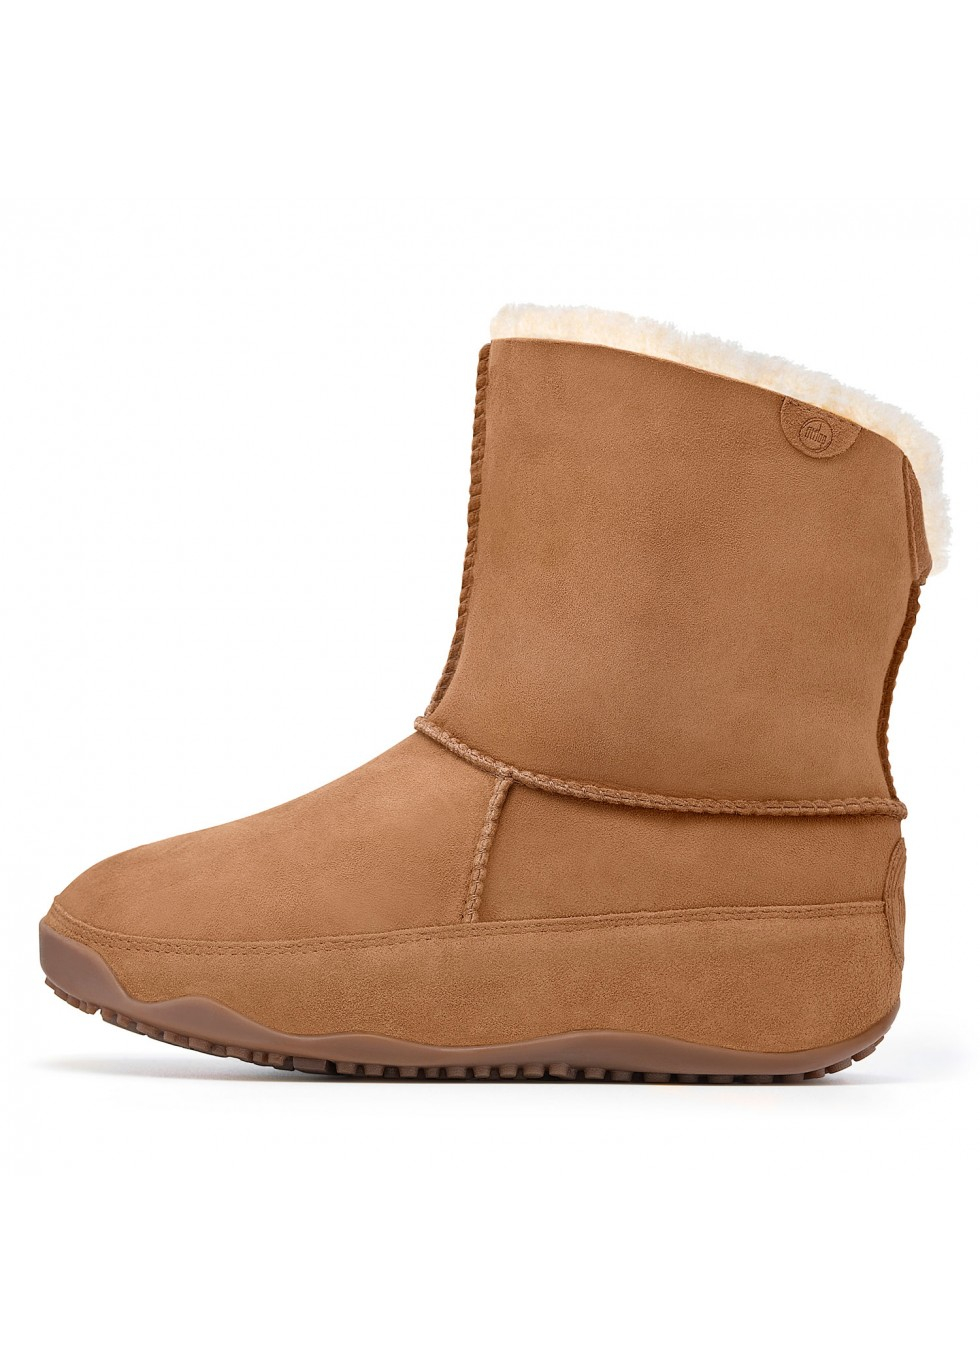 3f4f6d56f22643 Fitflop Mukluk Boots Size 7 in Brown - Lyst